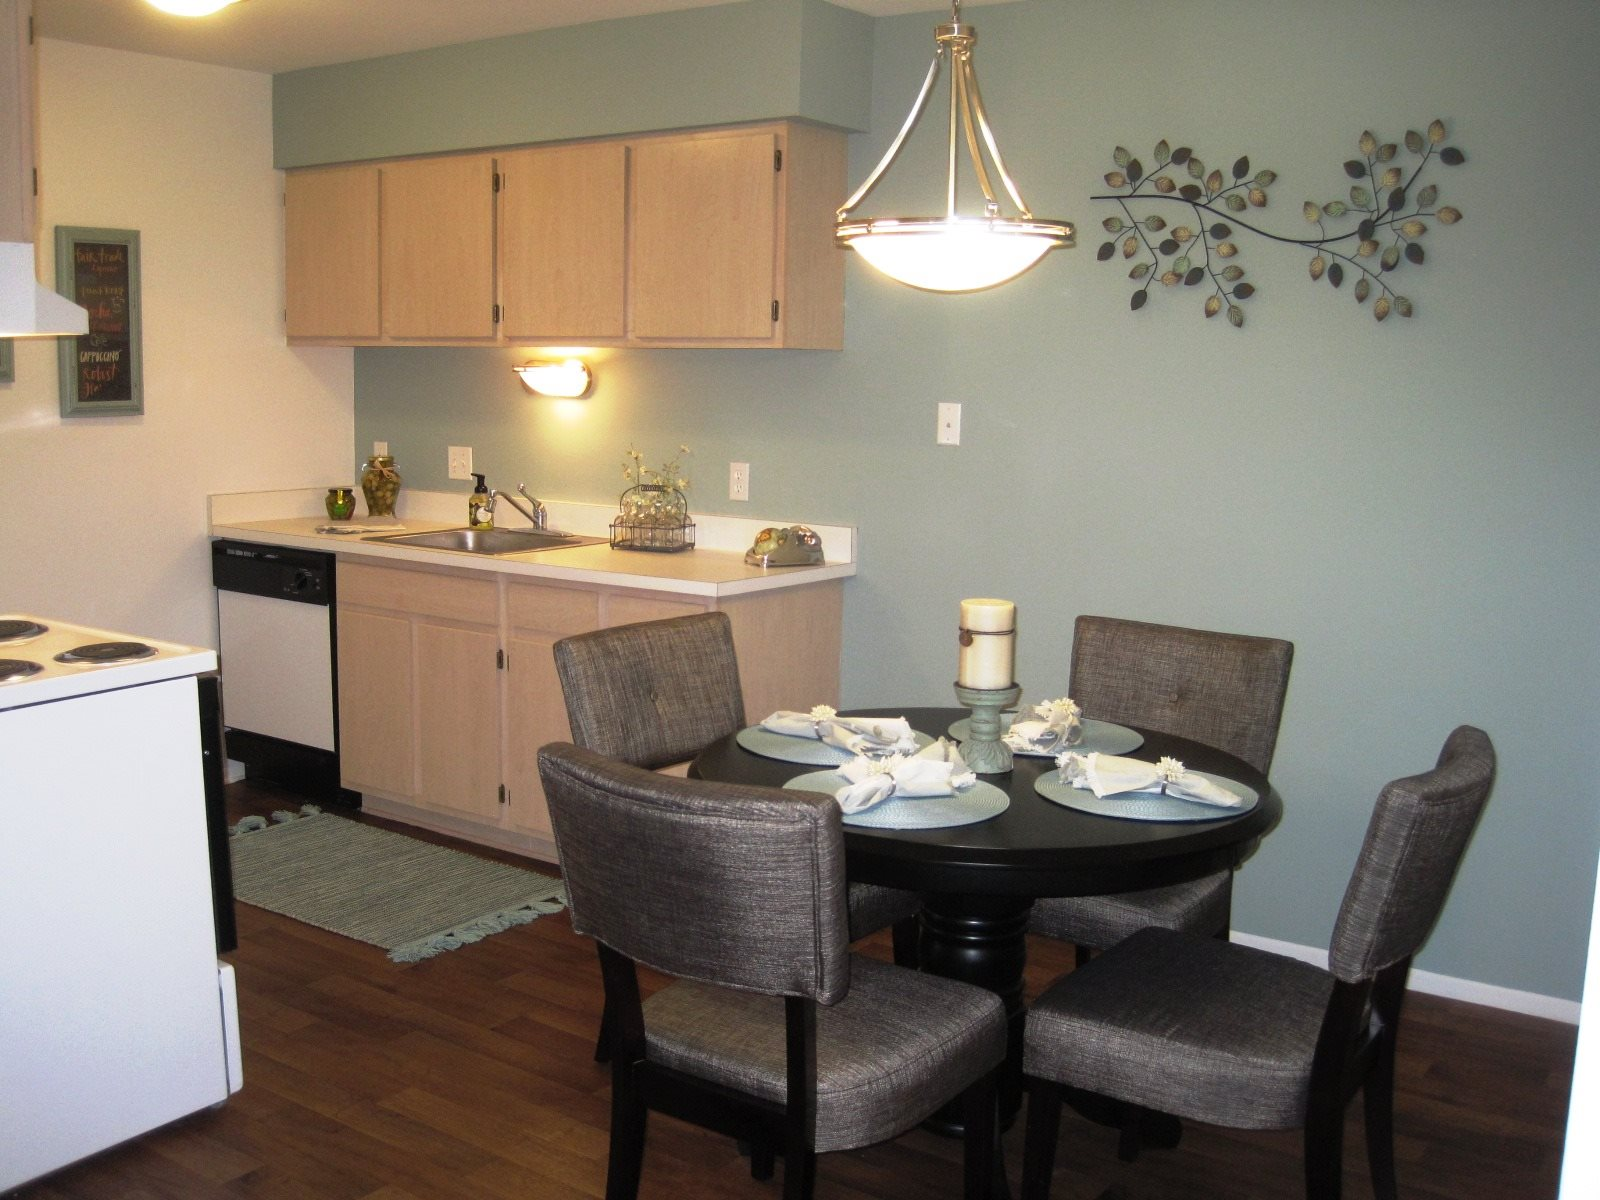 Dover hills apartments in kalamazoo mi 269 216 4 for One bedroom apartments kalamazoo mi